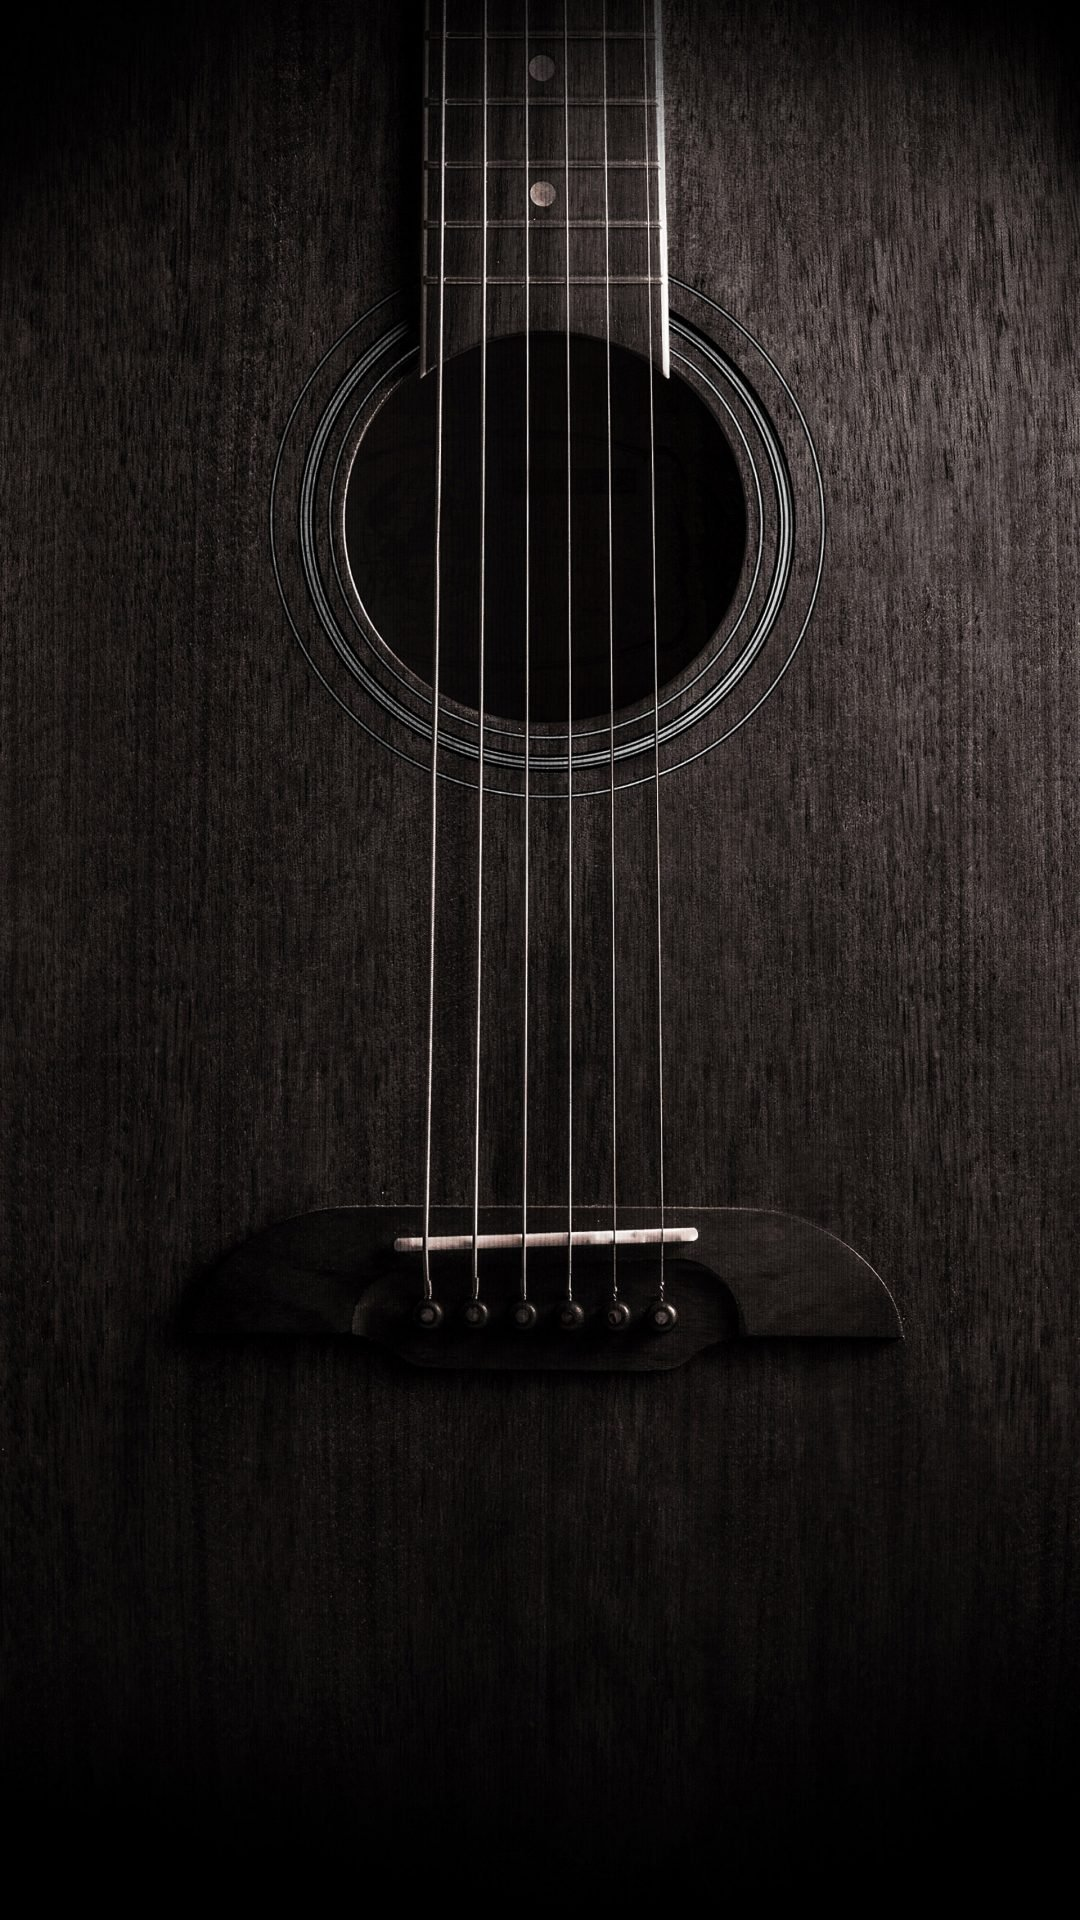 Free Download Guitar Dark Music Instrument 4k Wallpaper Best